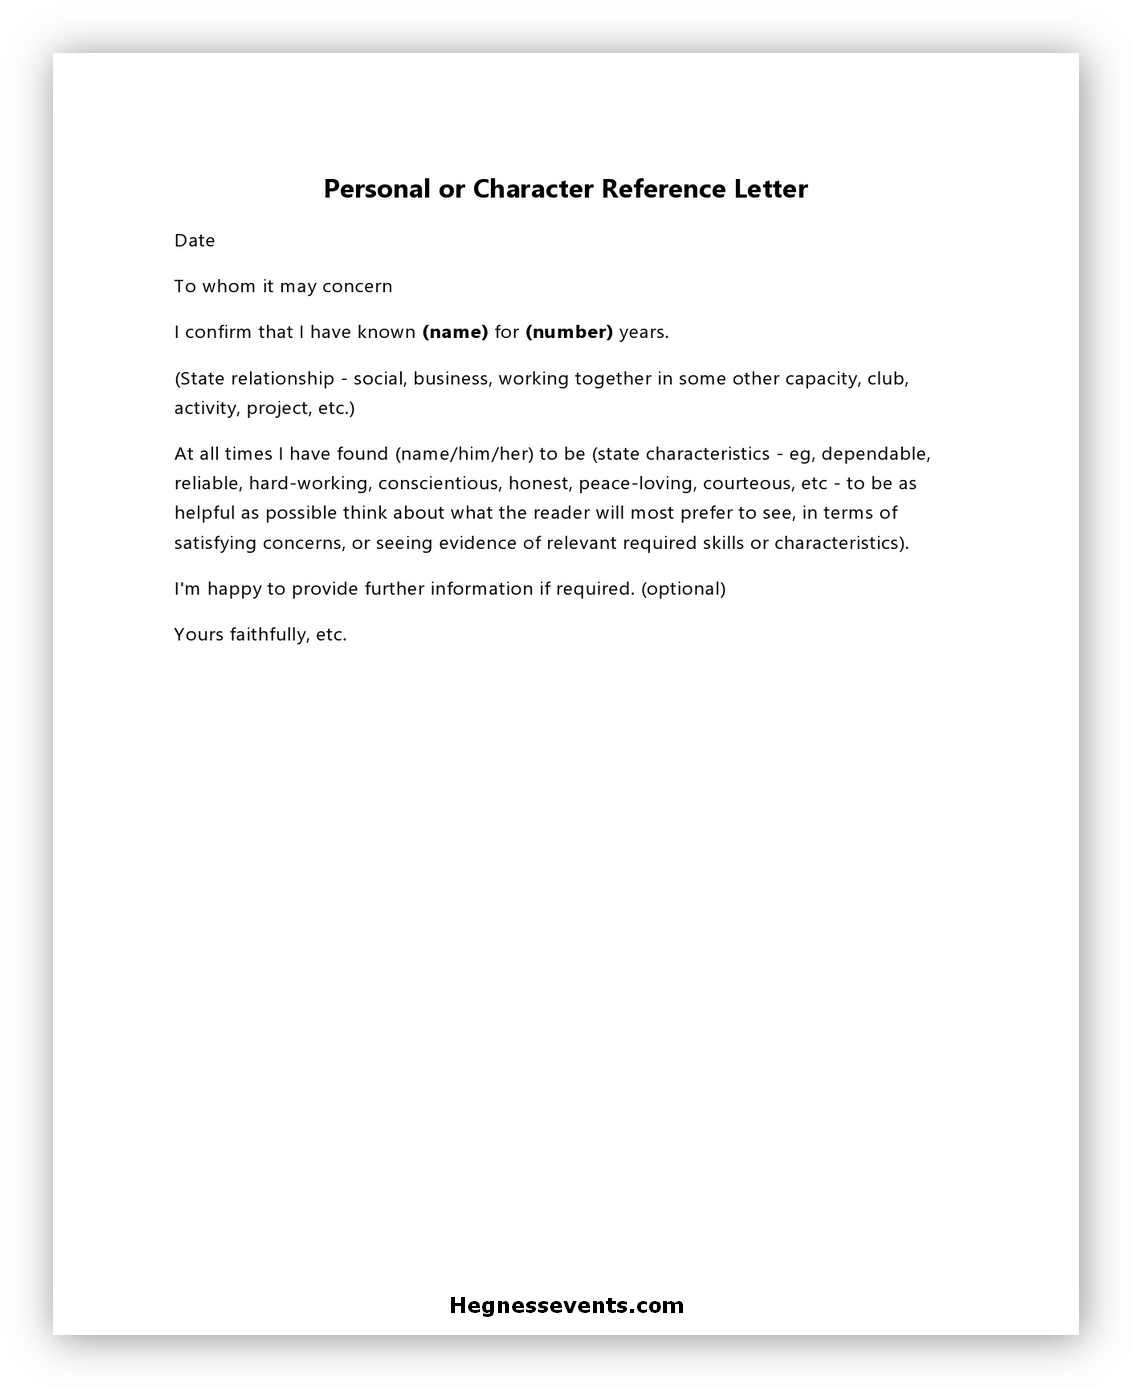 Letter of Reference Character 07